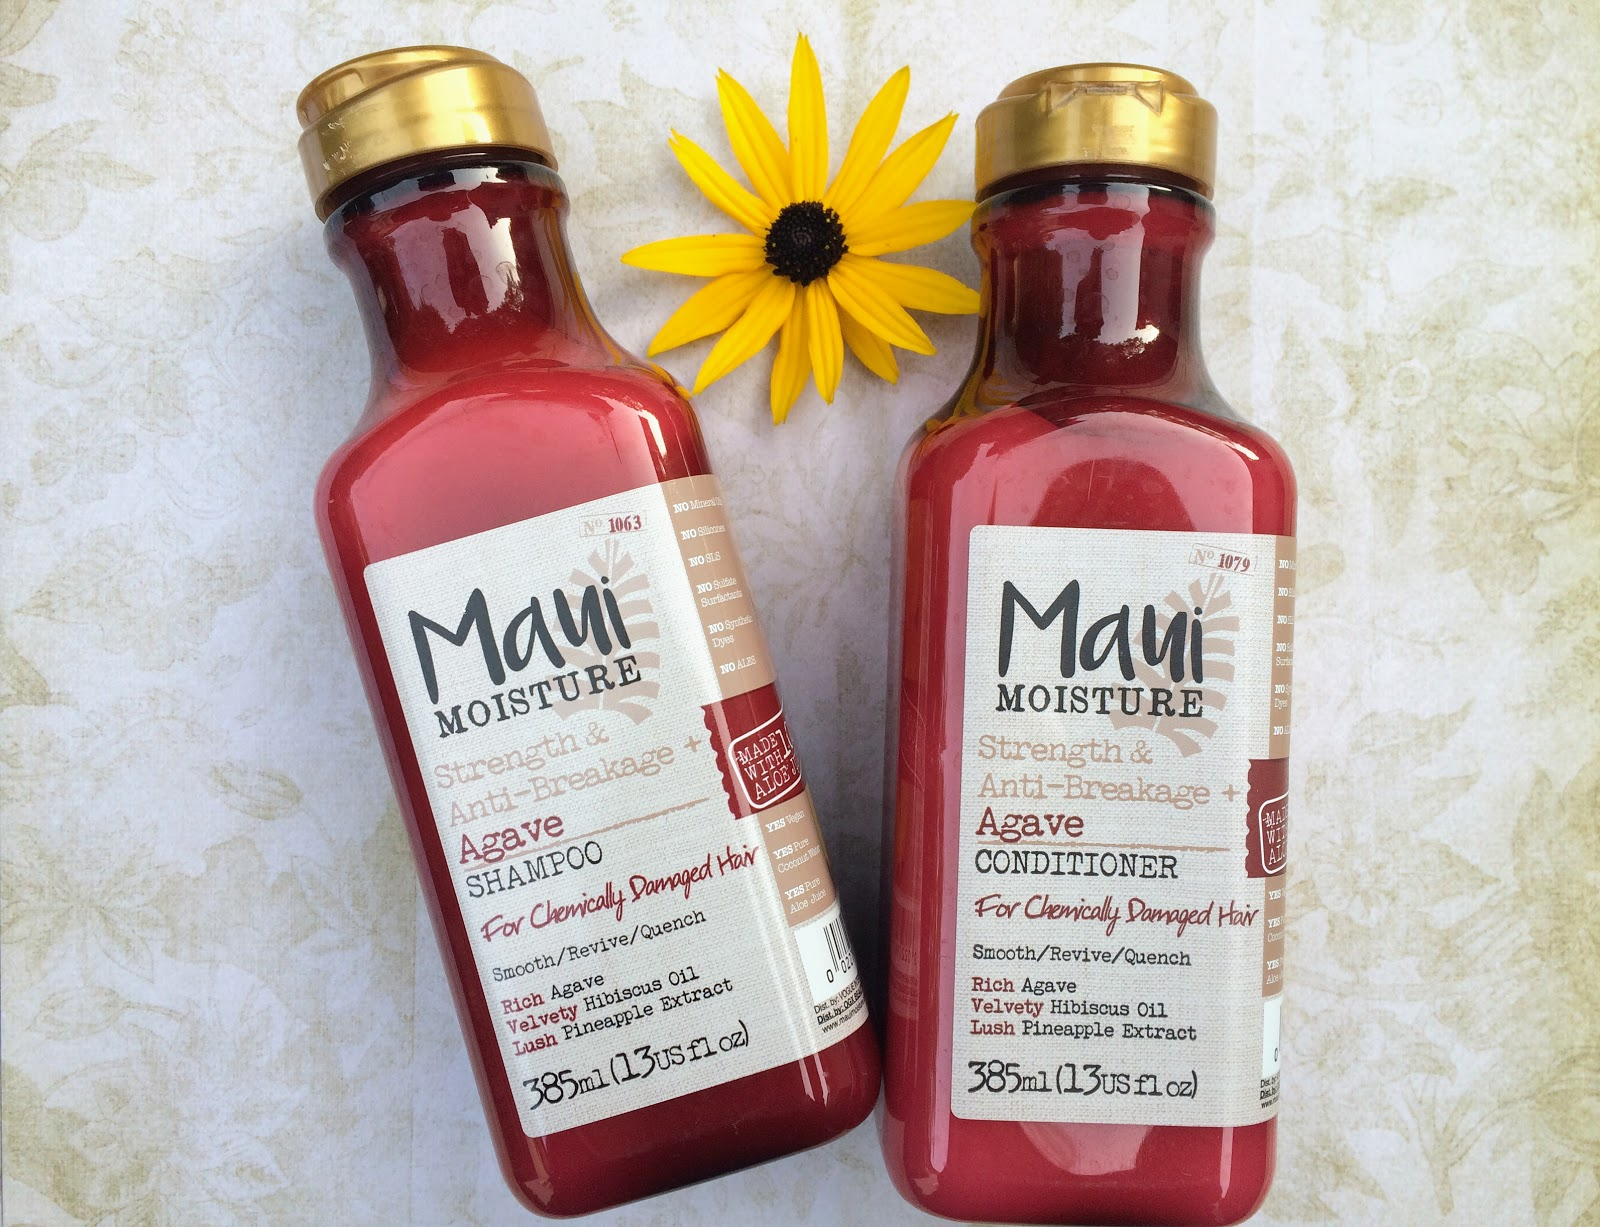 Maui shampoo and conditioner